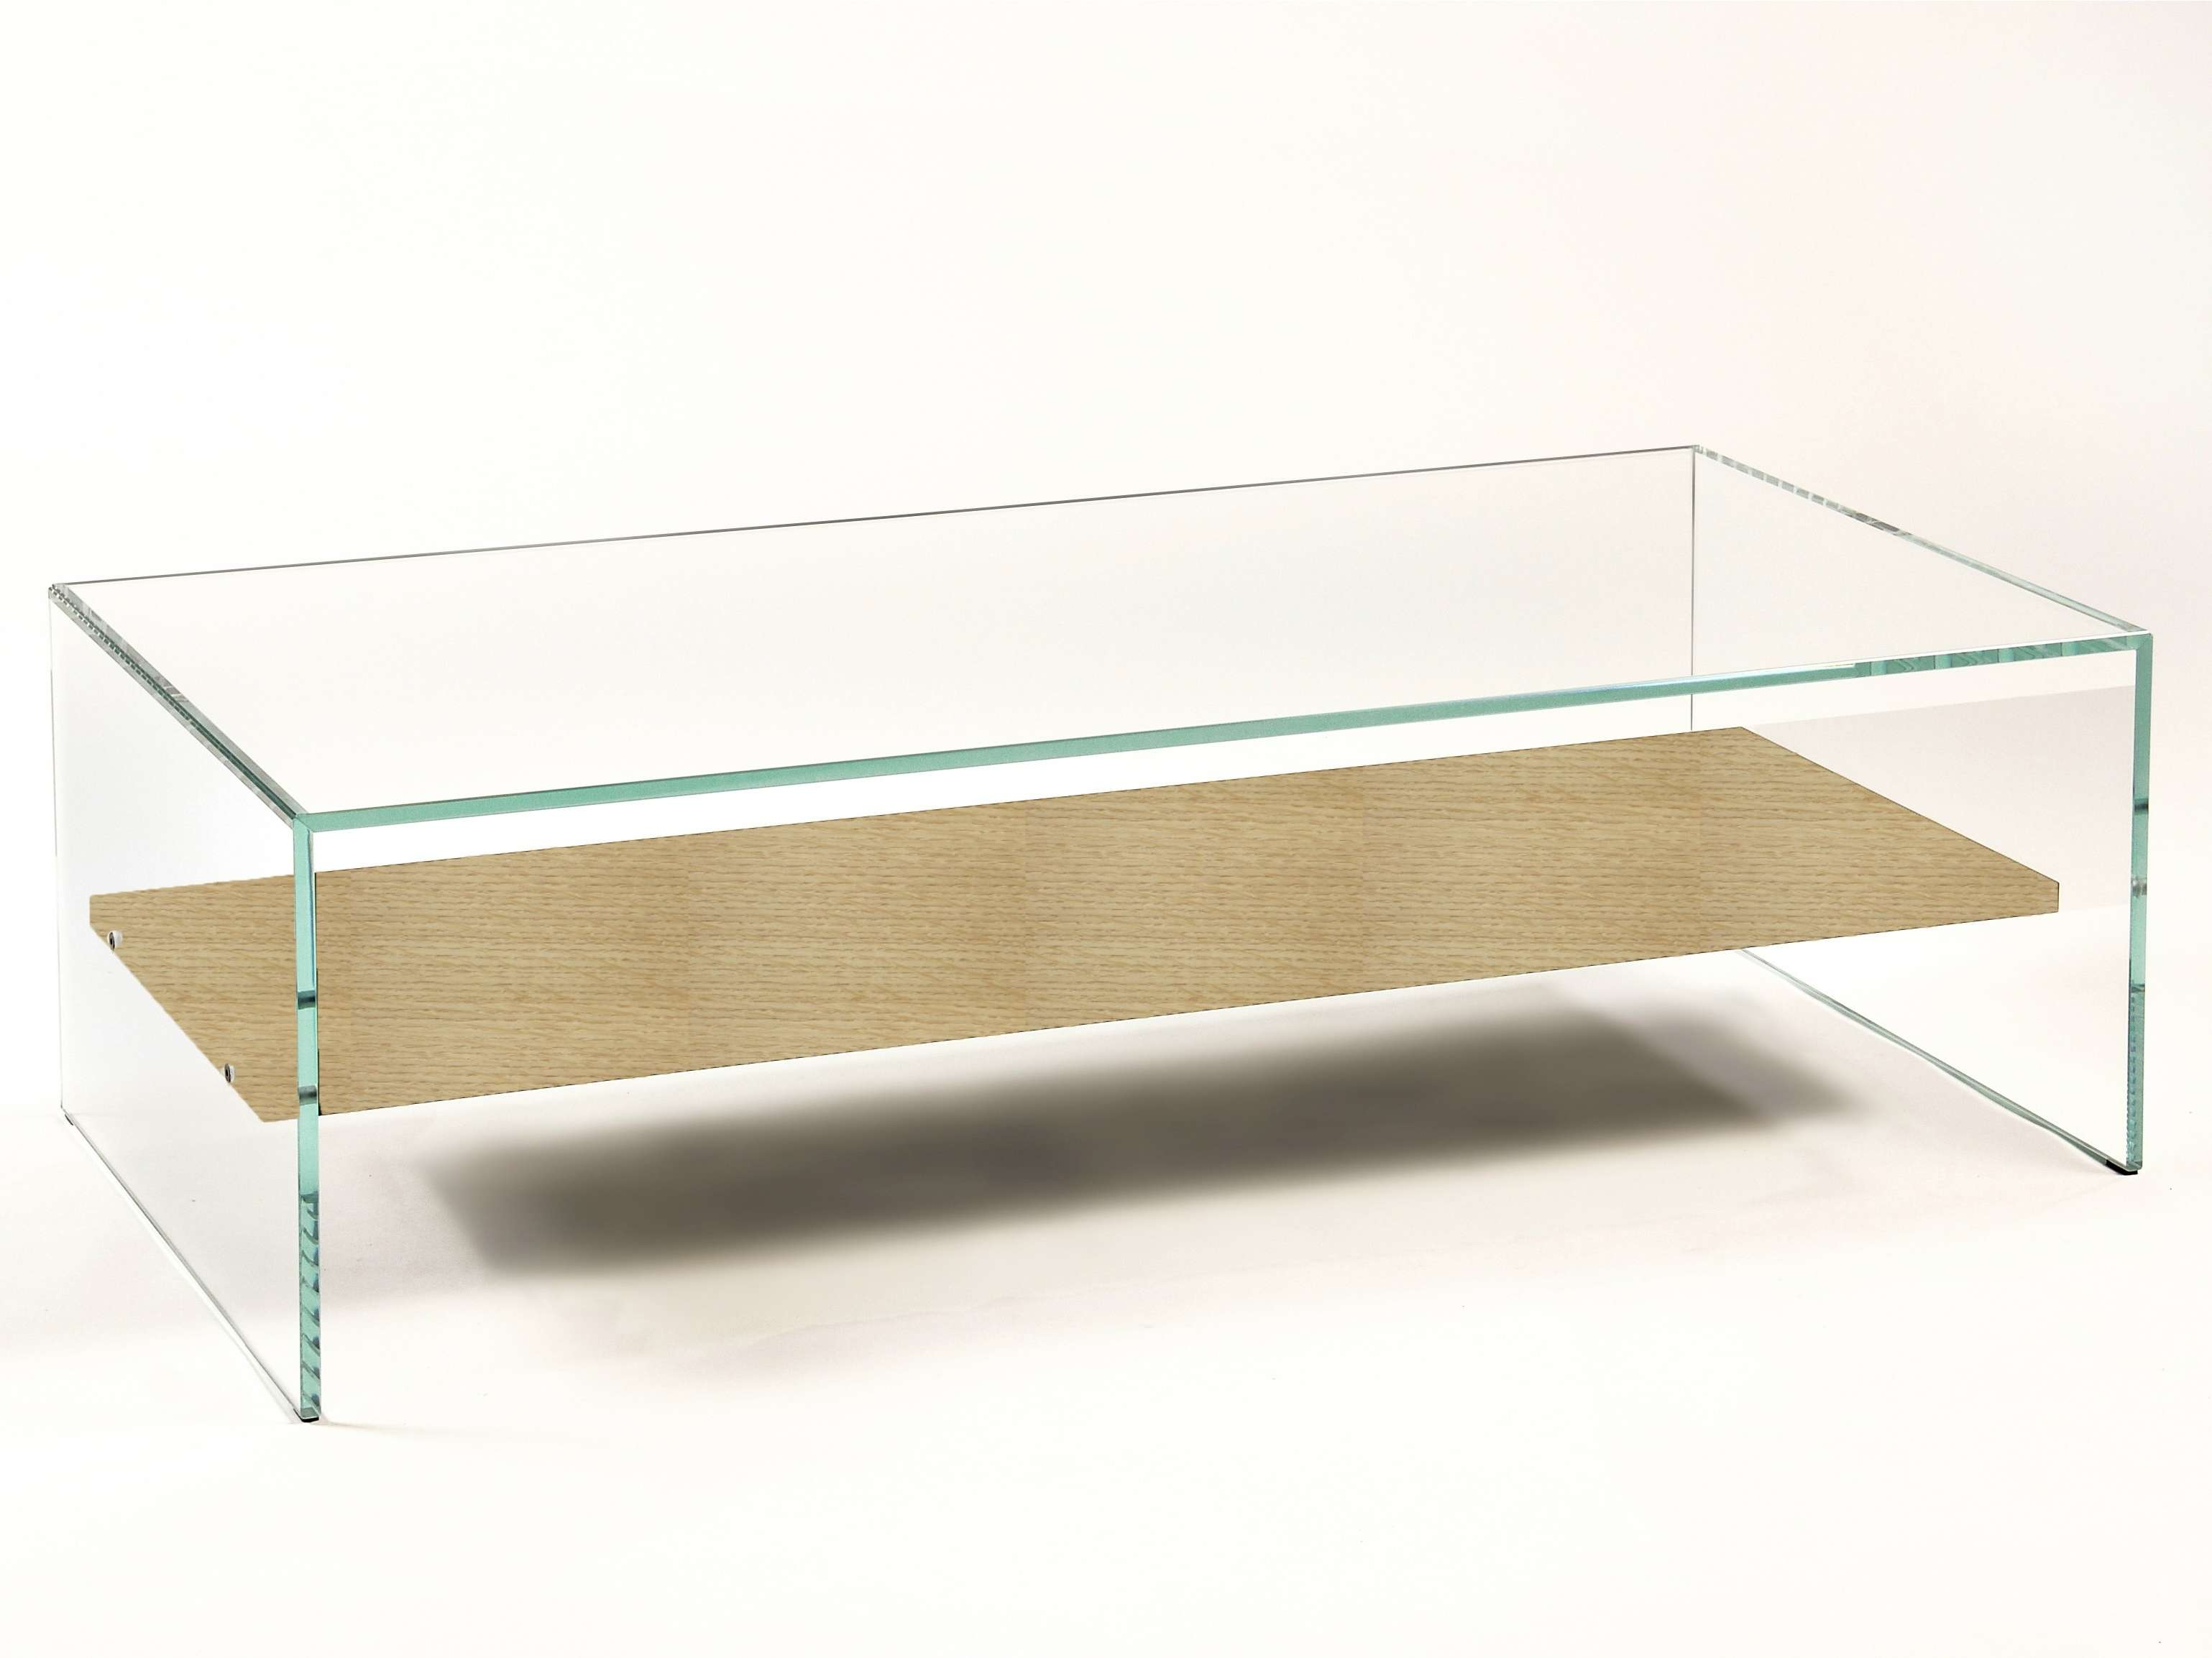 Custom Low Modern Glass Square Coffee Table With Wood Shelves For With Regard To Well Liked Low Coffee Tables With Storage (View 8 of 20)